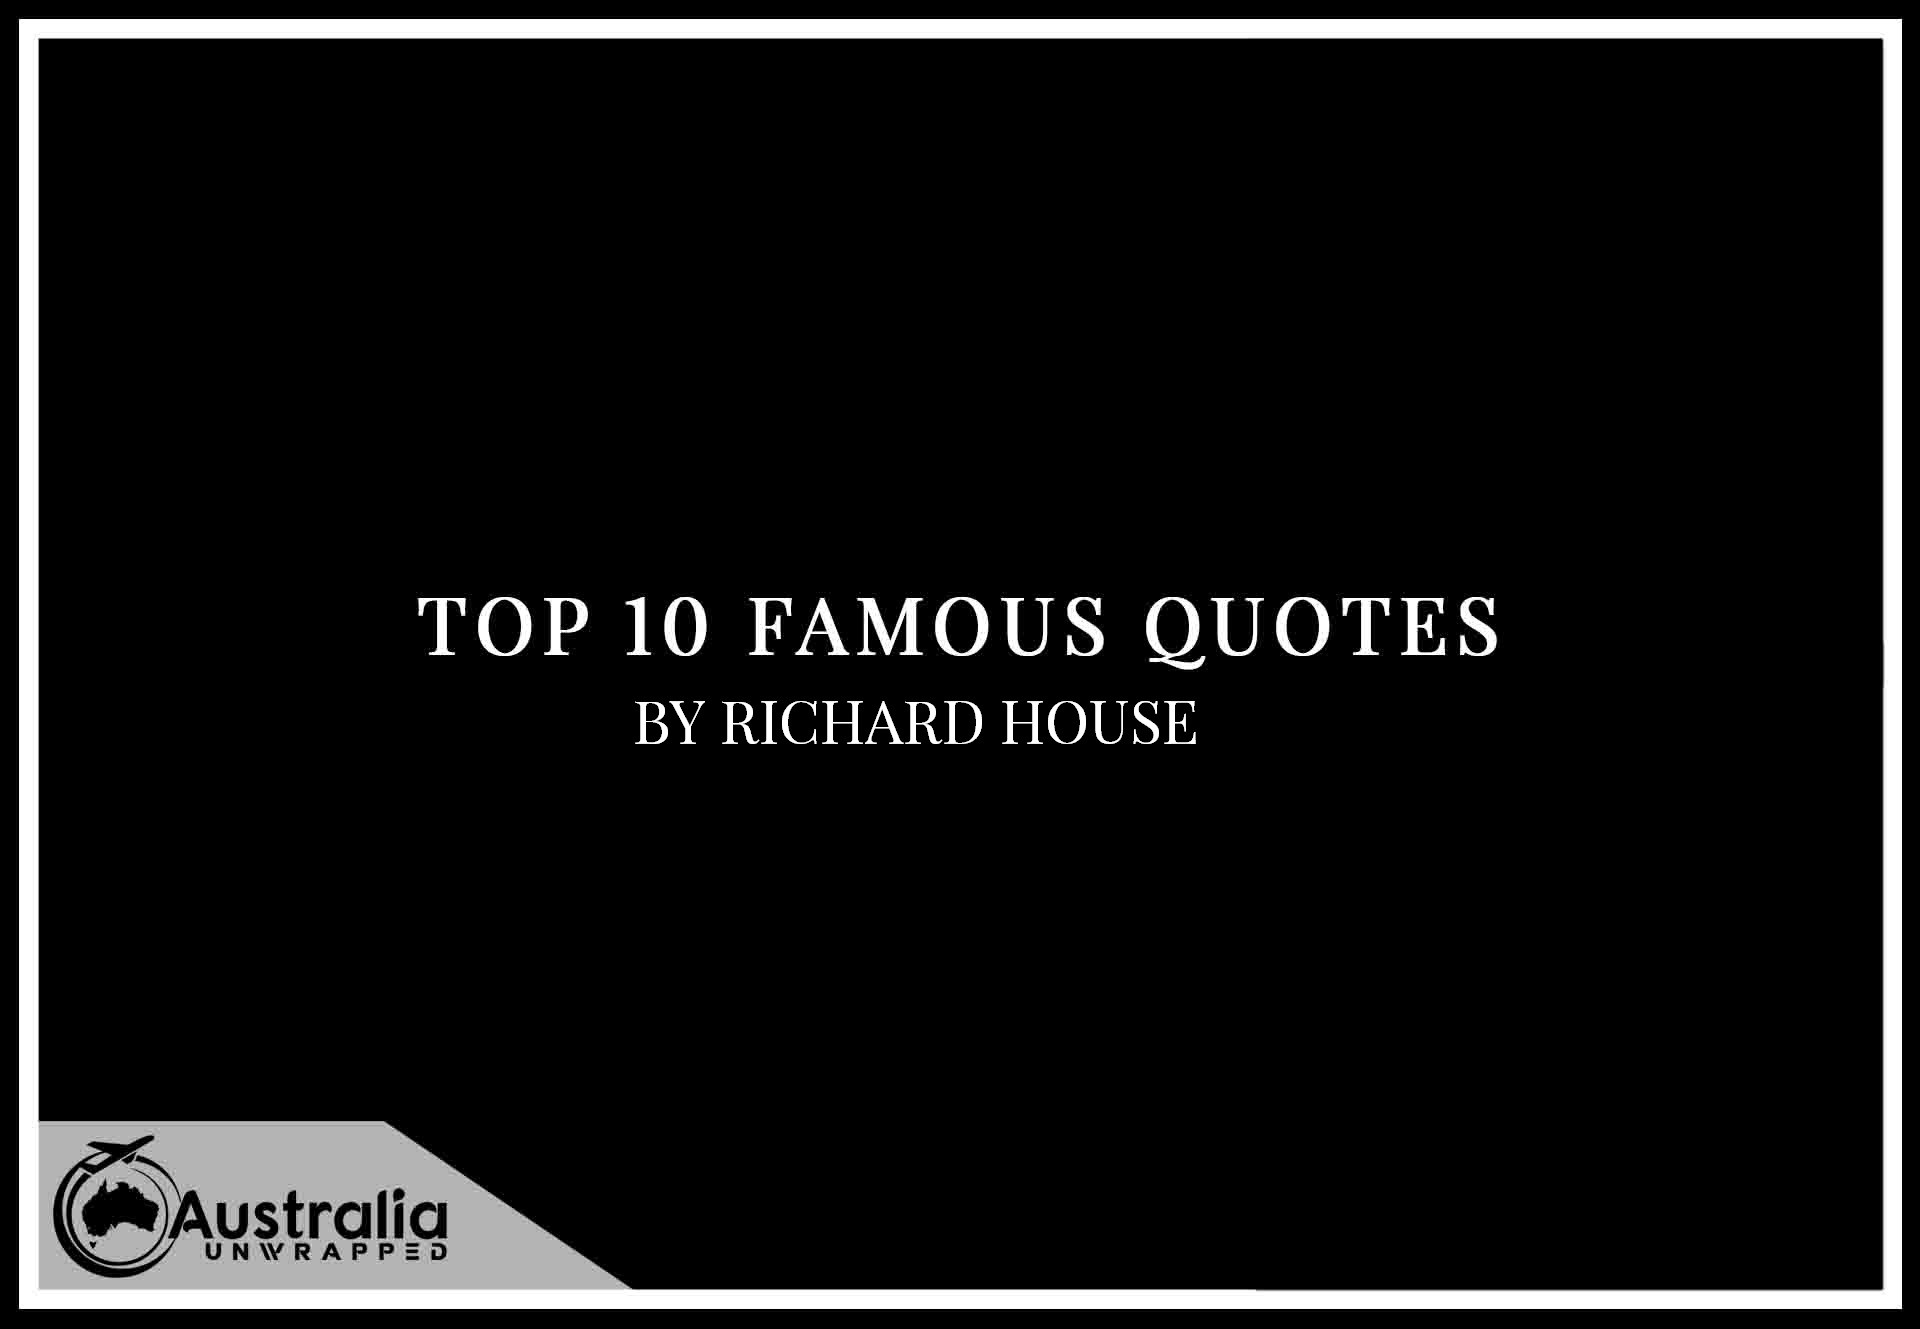 Richard House's Top 10 Popular and Famous Quotes